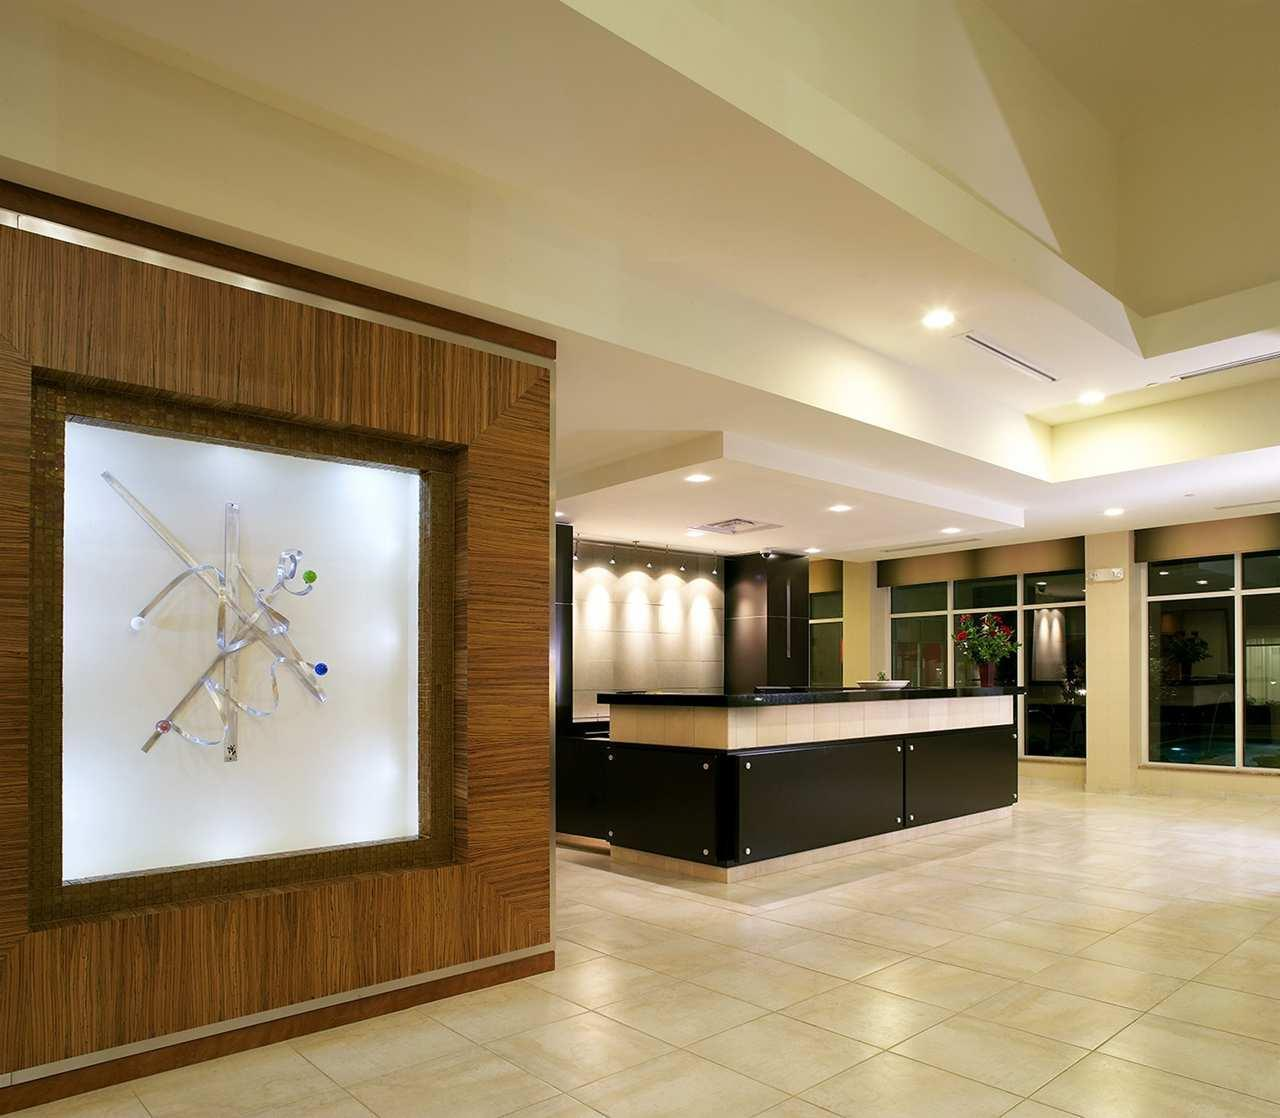 Hilton Garden Inn Dallas/Arlington image 3